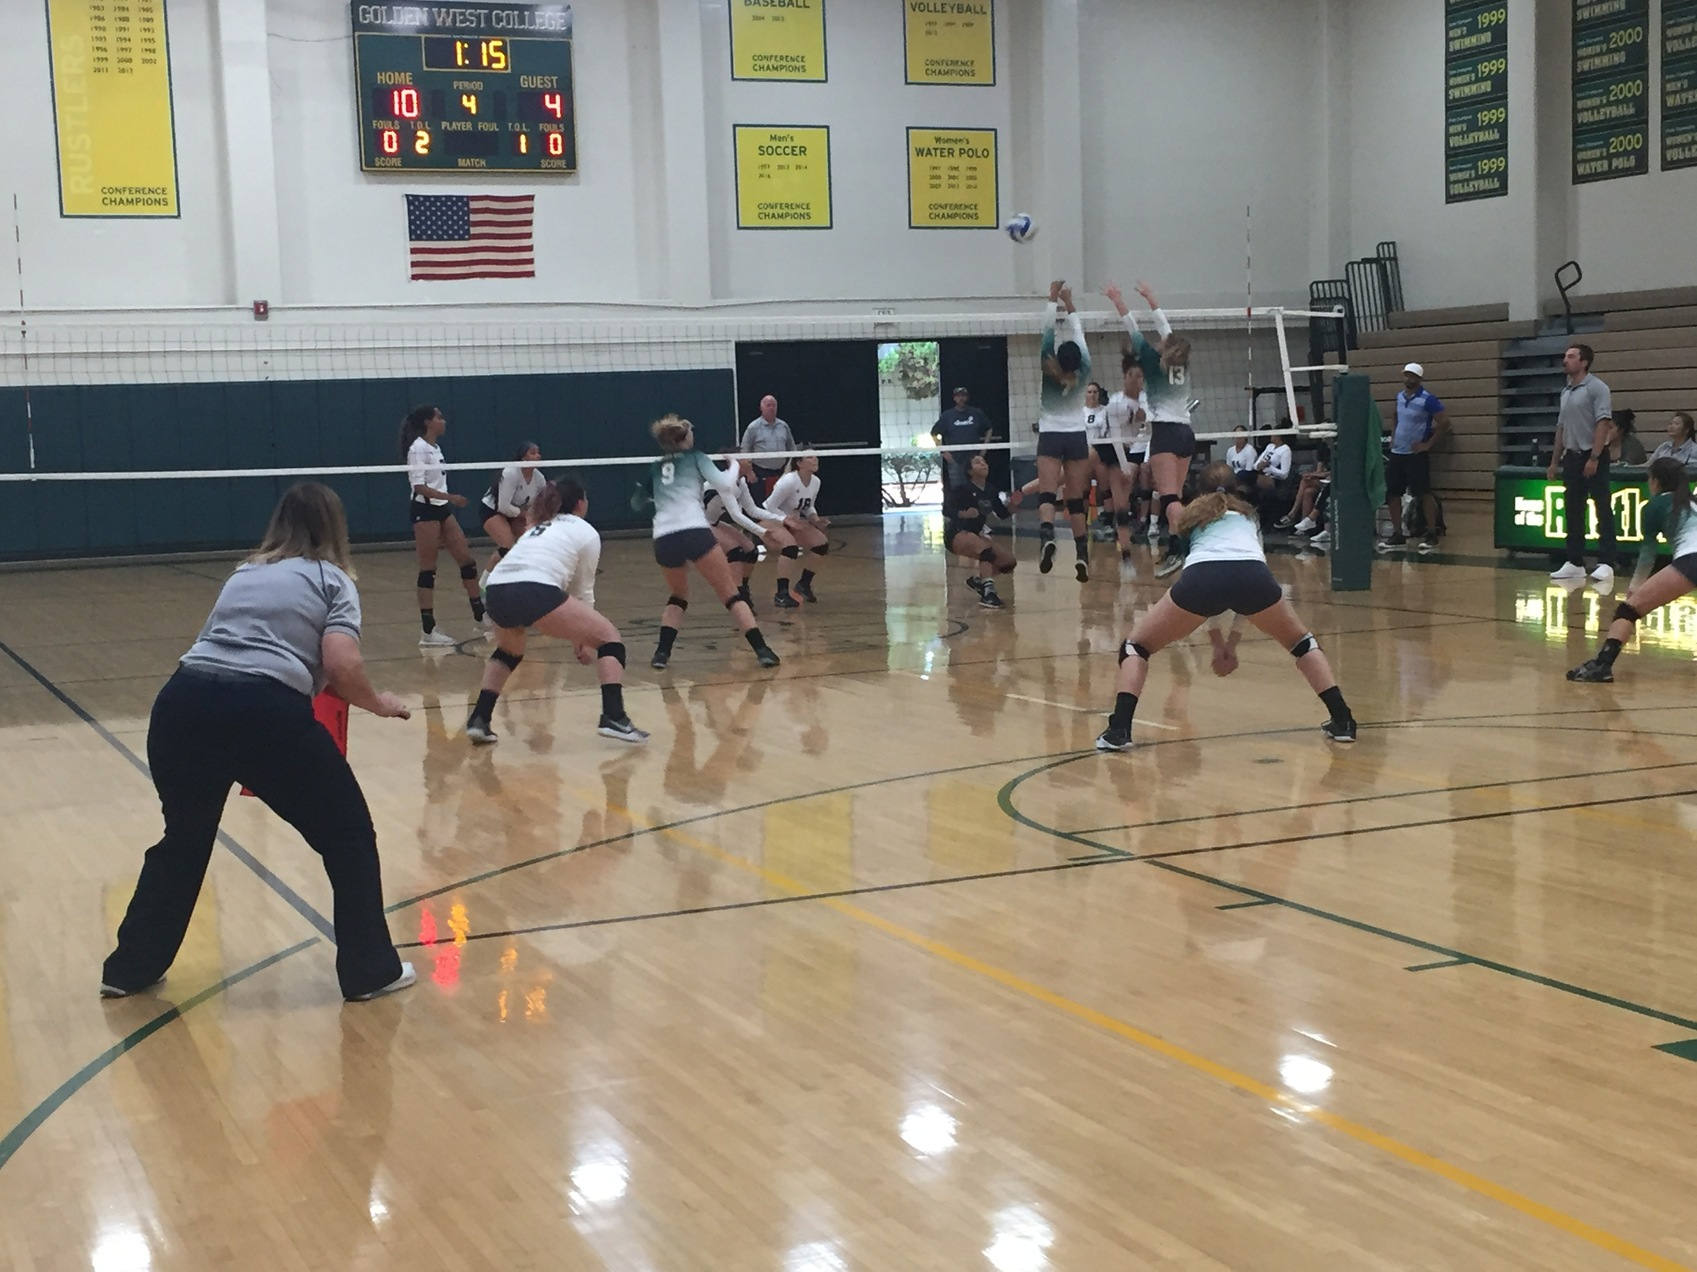 W Volleyball: Win in 5 Sets to Stay Undefeated